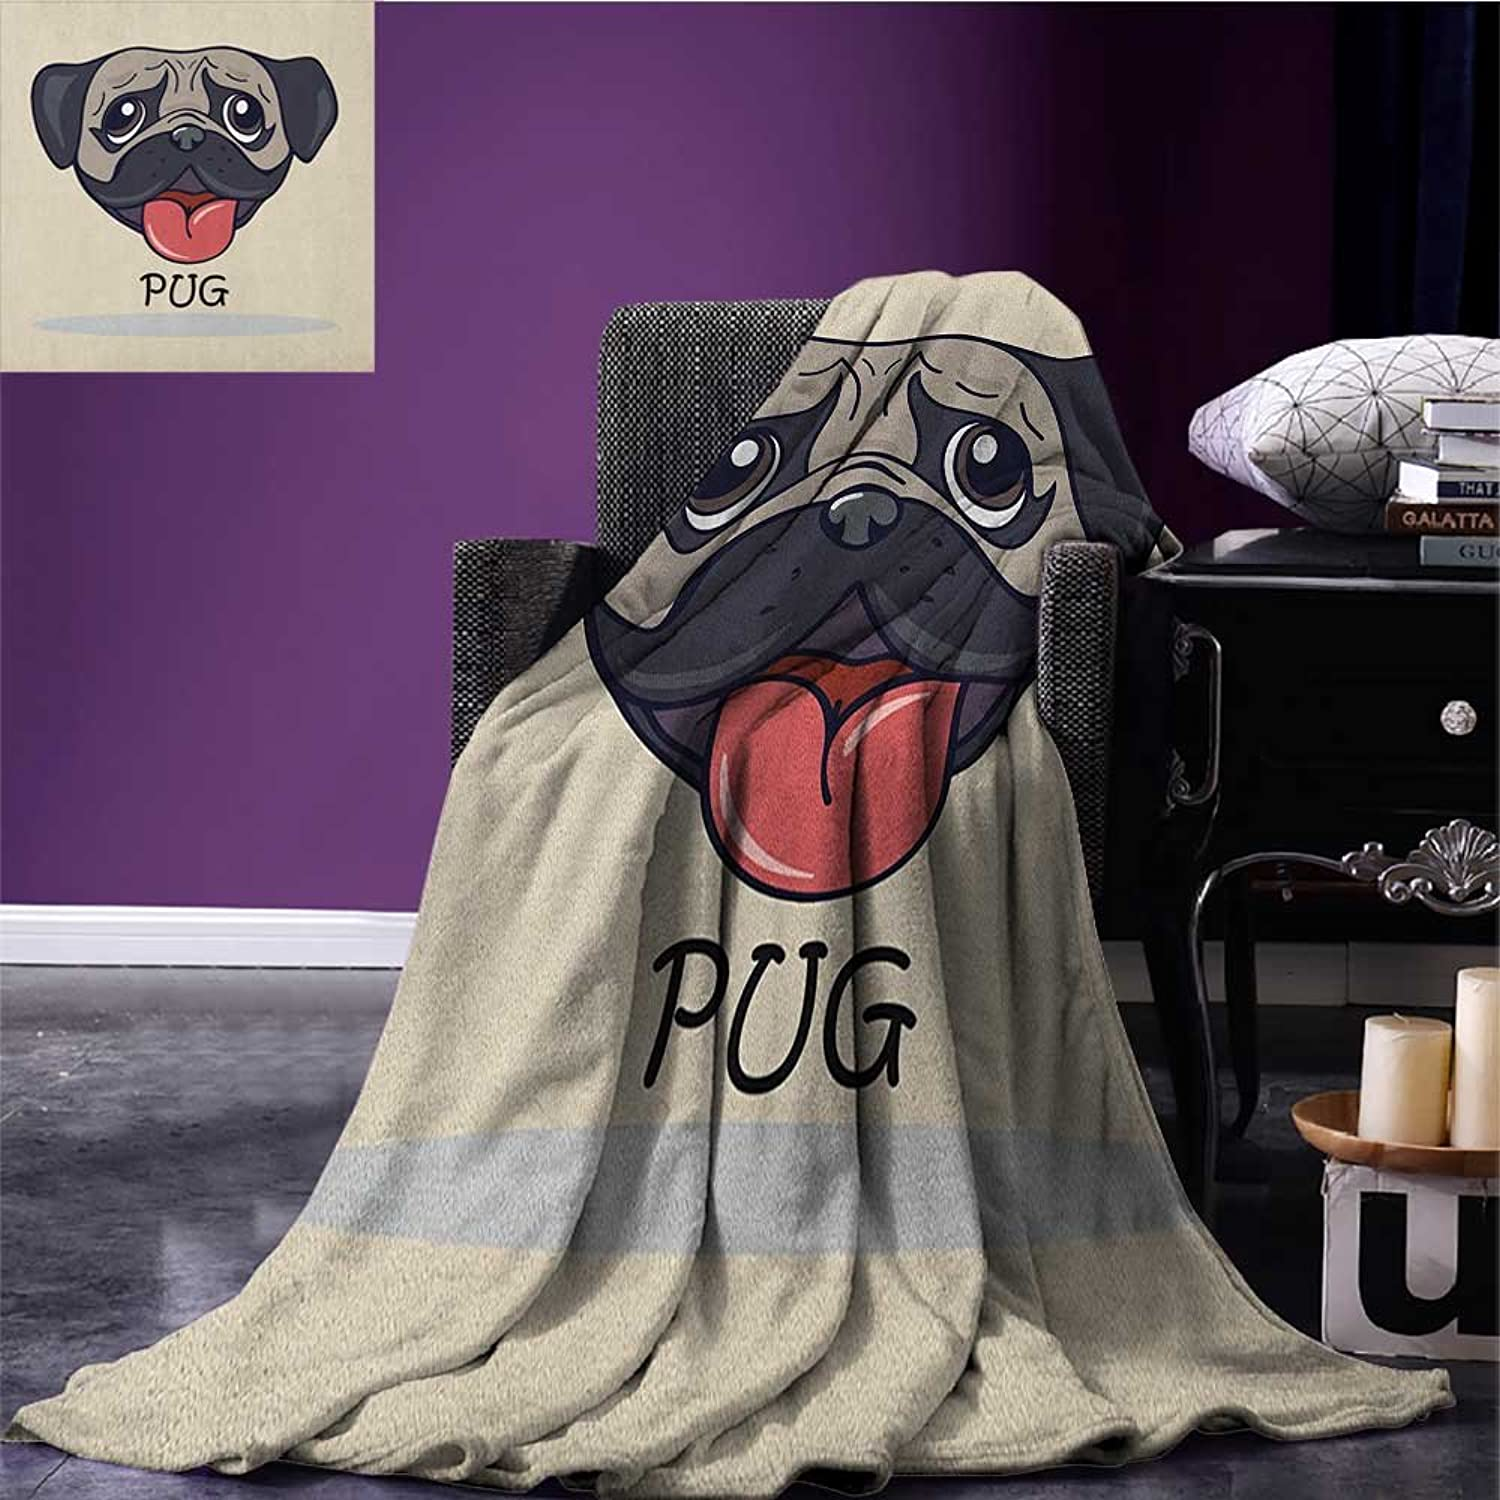 Pug Printed Blanket Cartoon Pug Dog Caricature with Its Tongue Out Happy Face Animal Fun Illustration Minion Blanket Taupe Black Red Size 59 x35.5